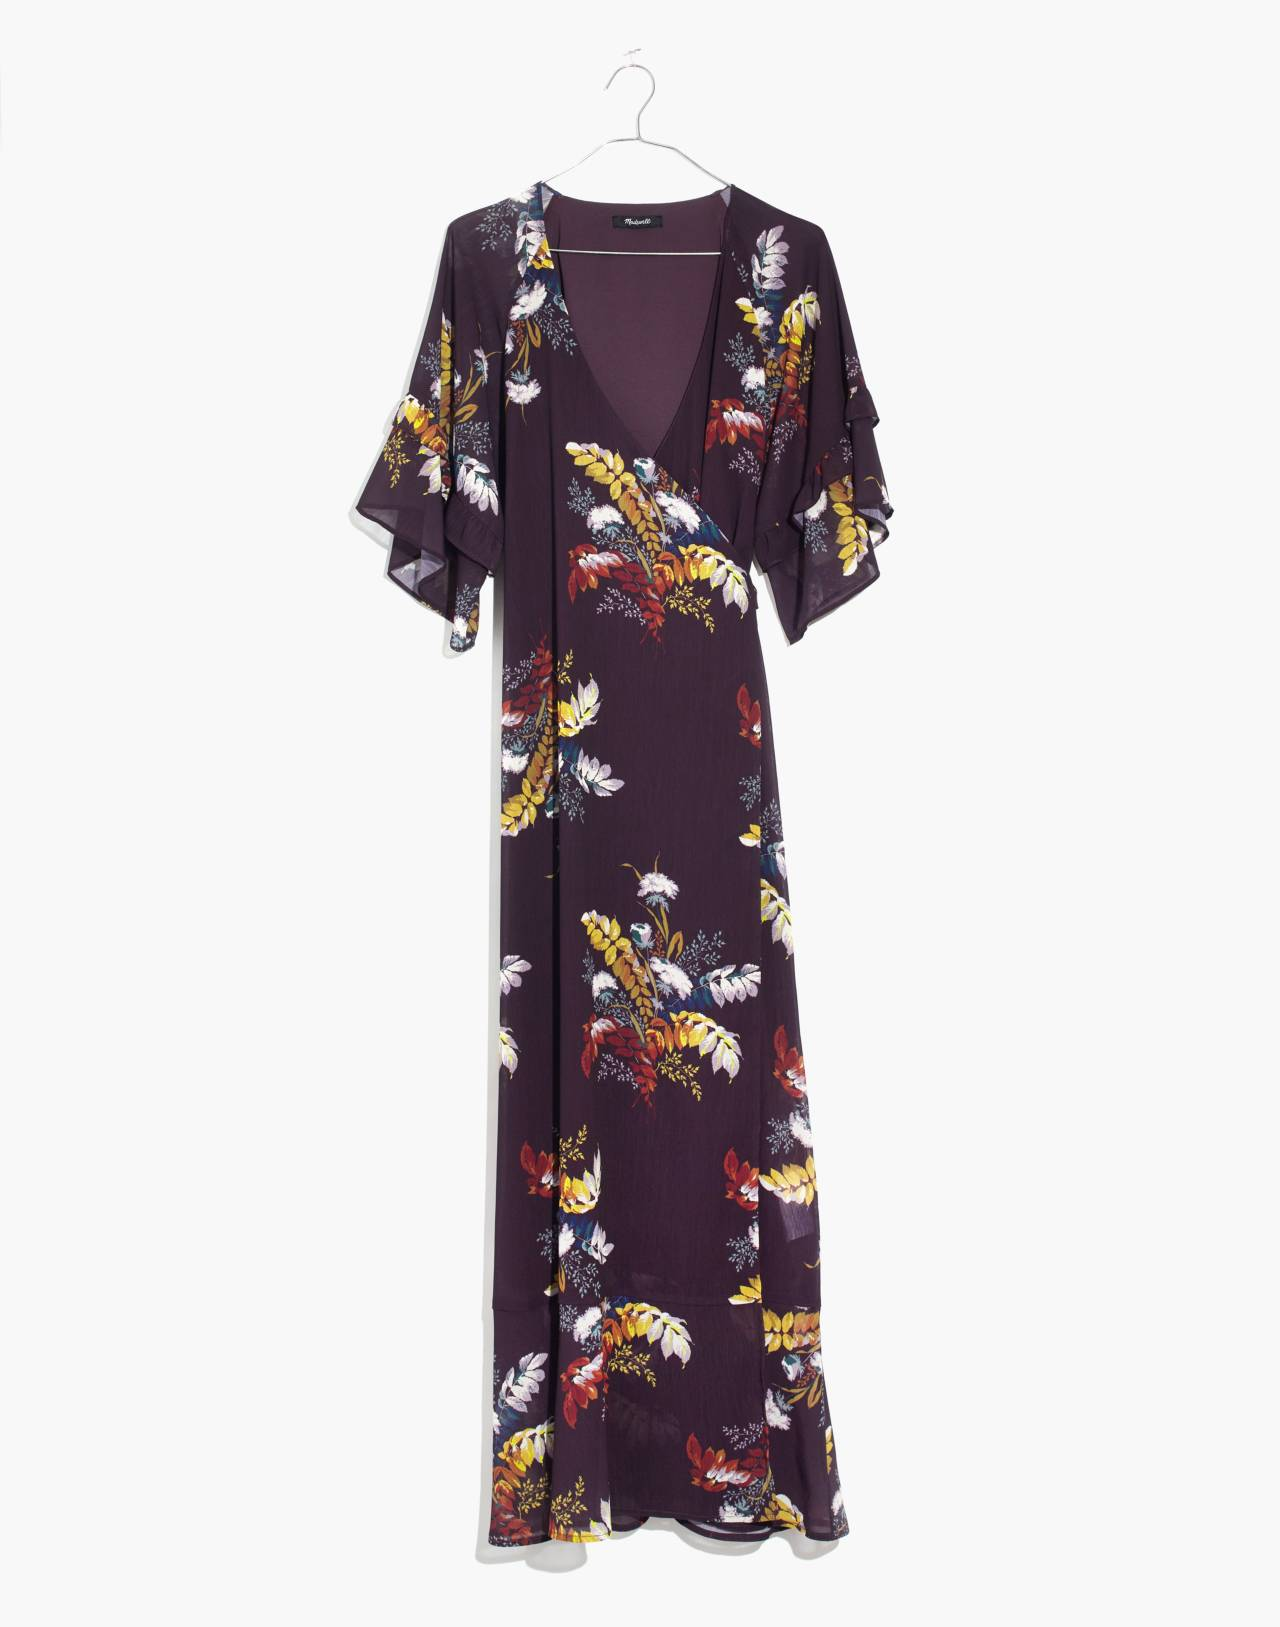 Vervain Ruffle-Sleeve Wrap Dress in Blooming Oasis in harvest dark eggplant image 4